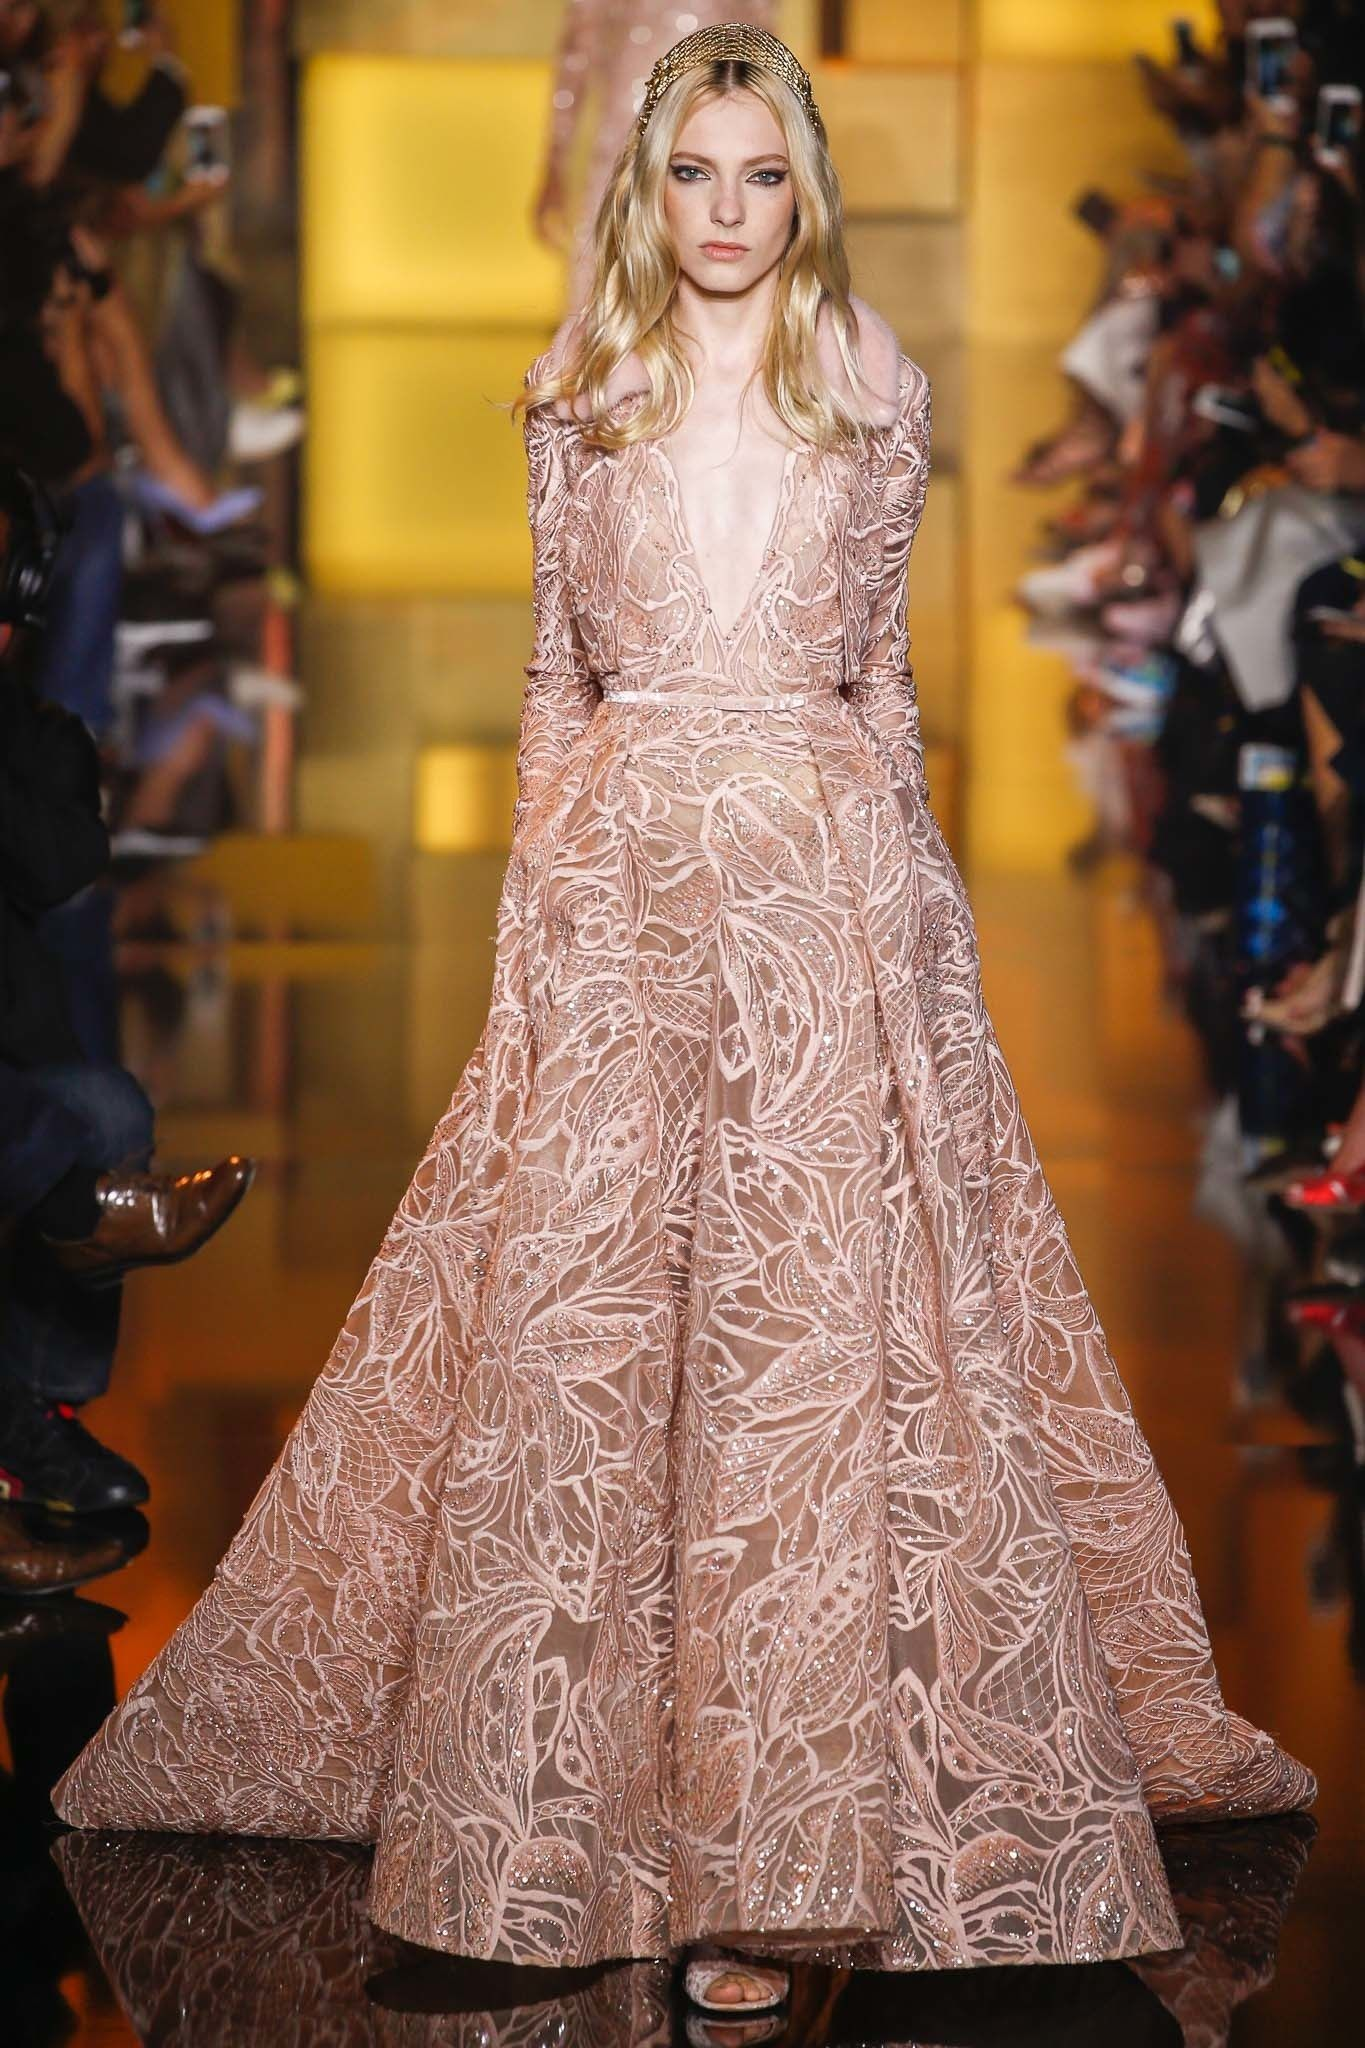 Elie Saab Fall 2015 Couture Fashion Show | Grecia